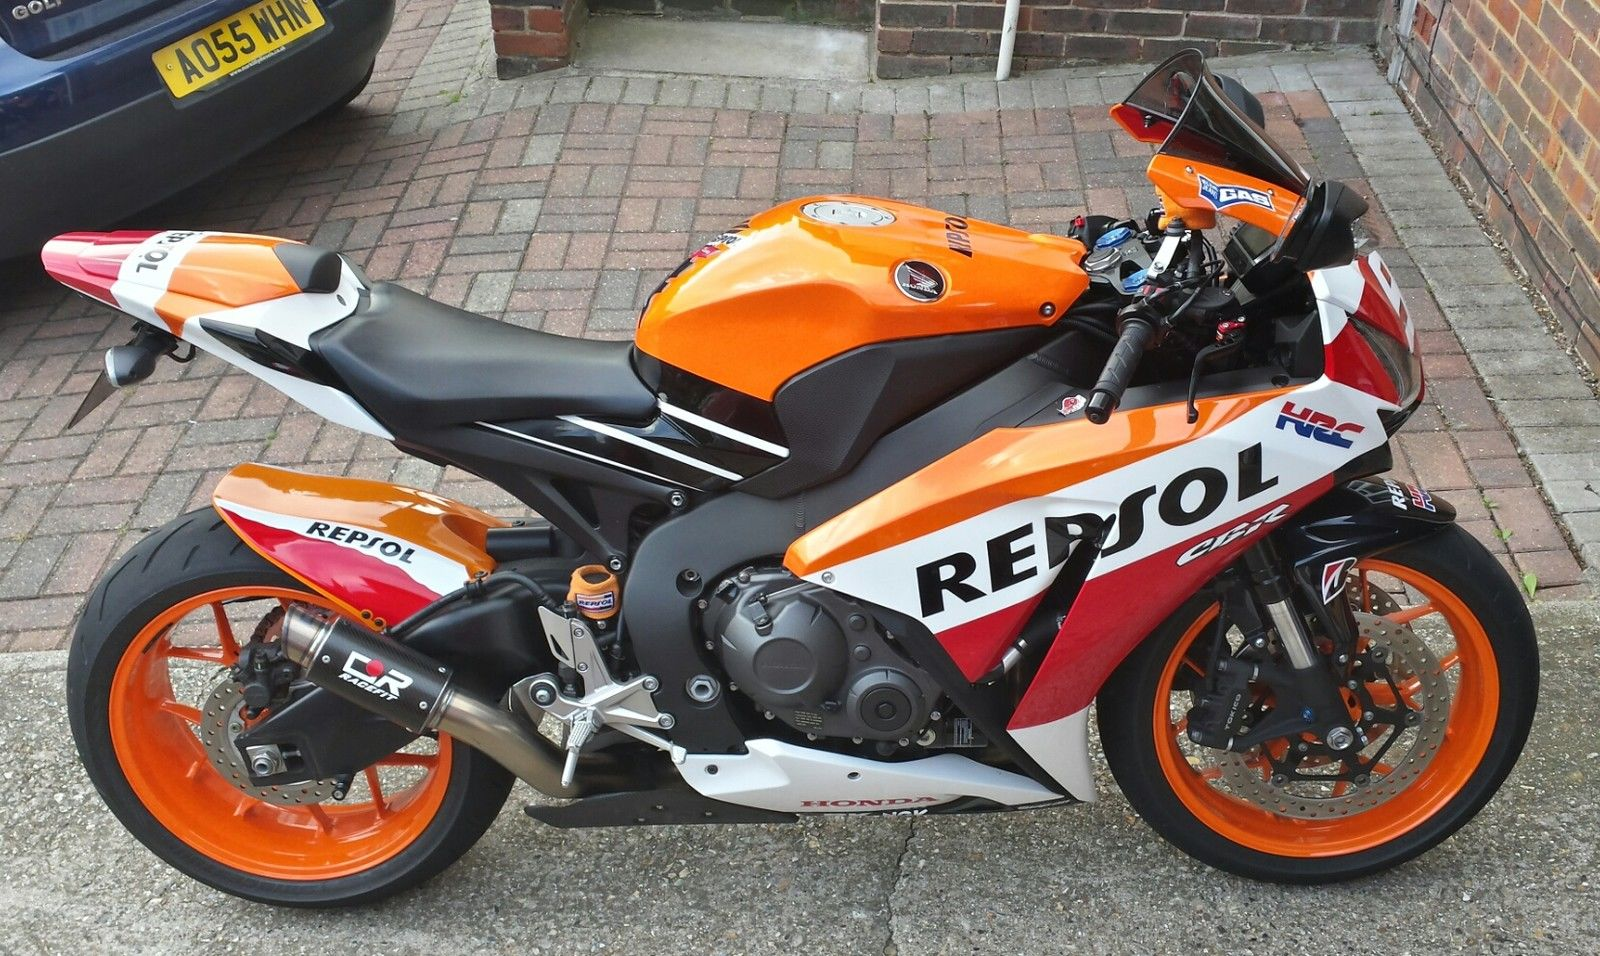 2013 honda cbr1000rr fireblade repsol honda marquez replica 93 3867 miles. Black Bedroom Furniture Sets. Home Design Ideas